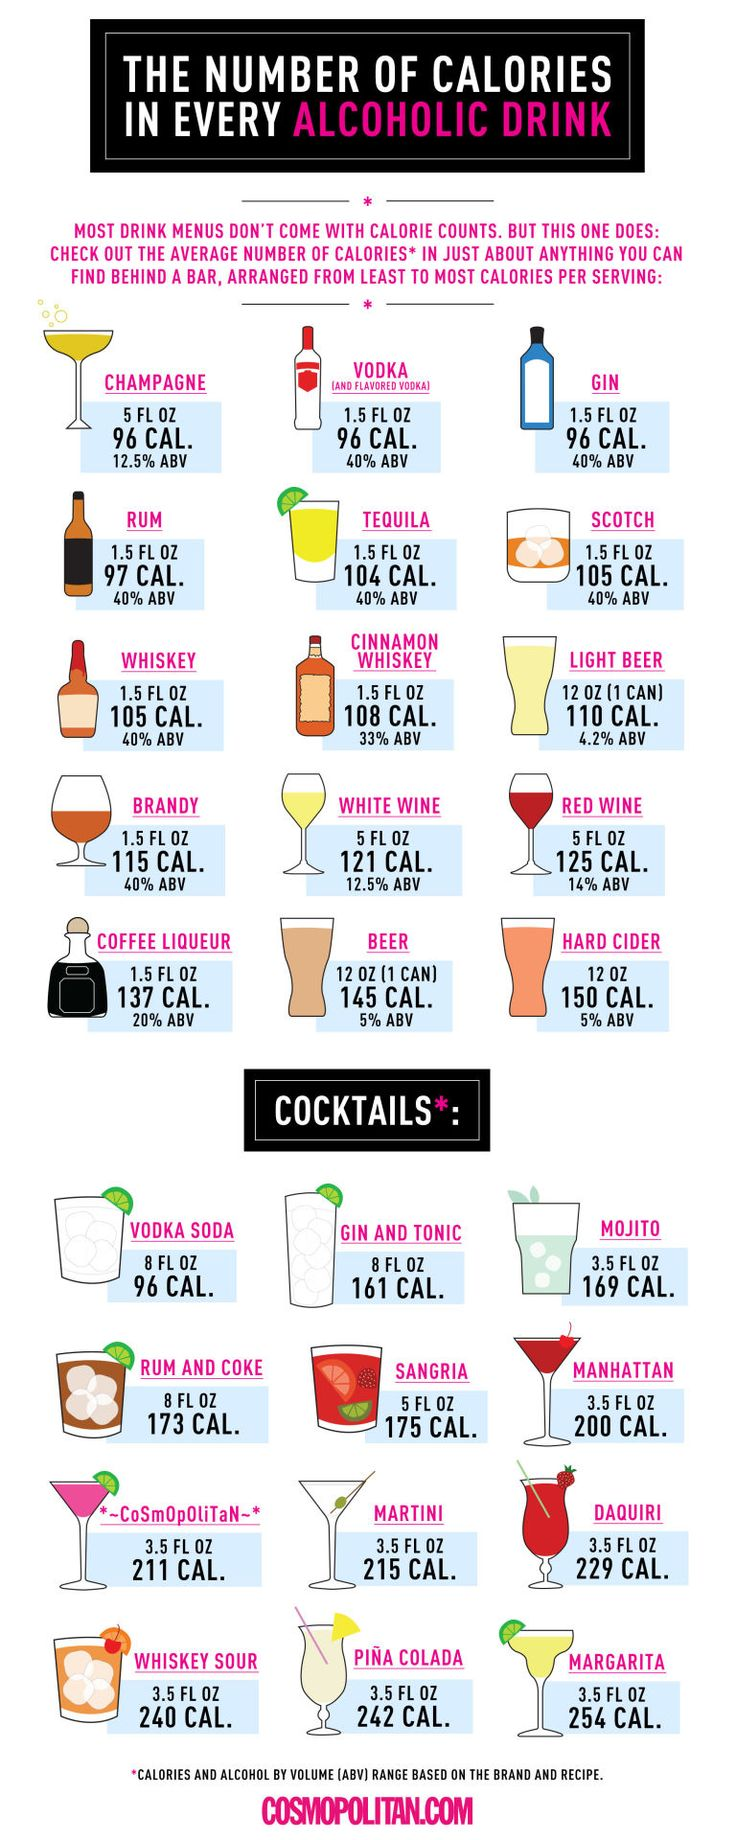 If you're a heavy drinker, changing nothing but your alcohol intake can help you lose weight.